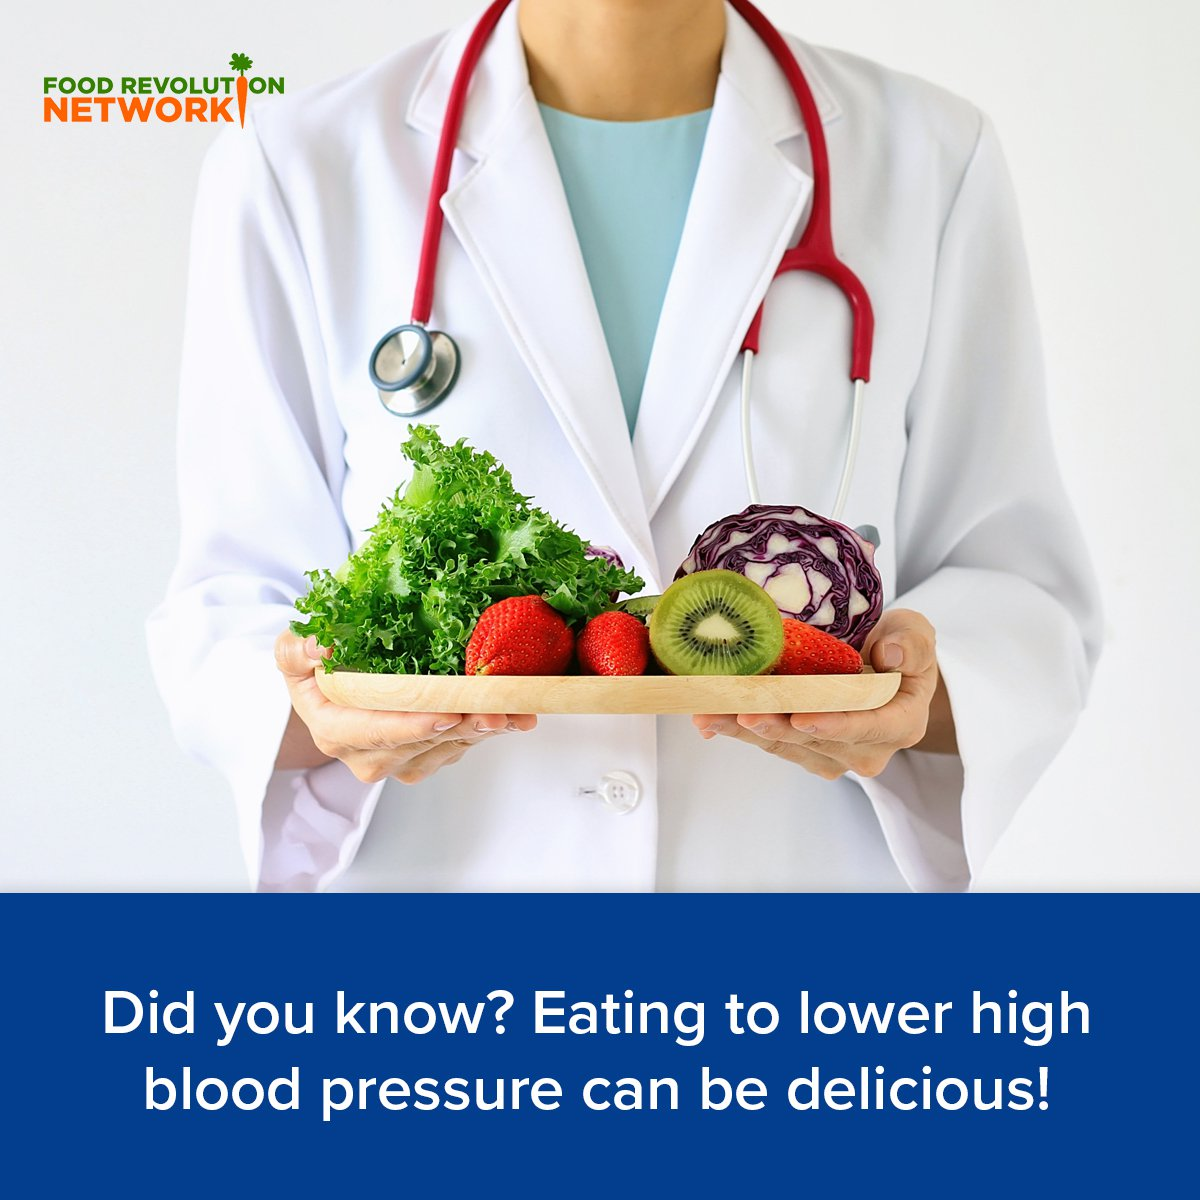 Food to lower blood pressure naturally